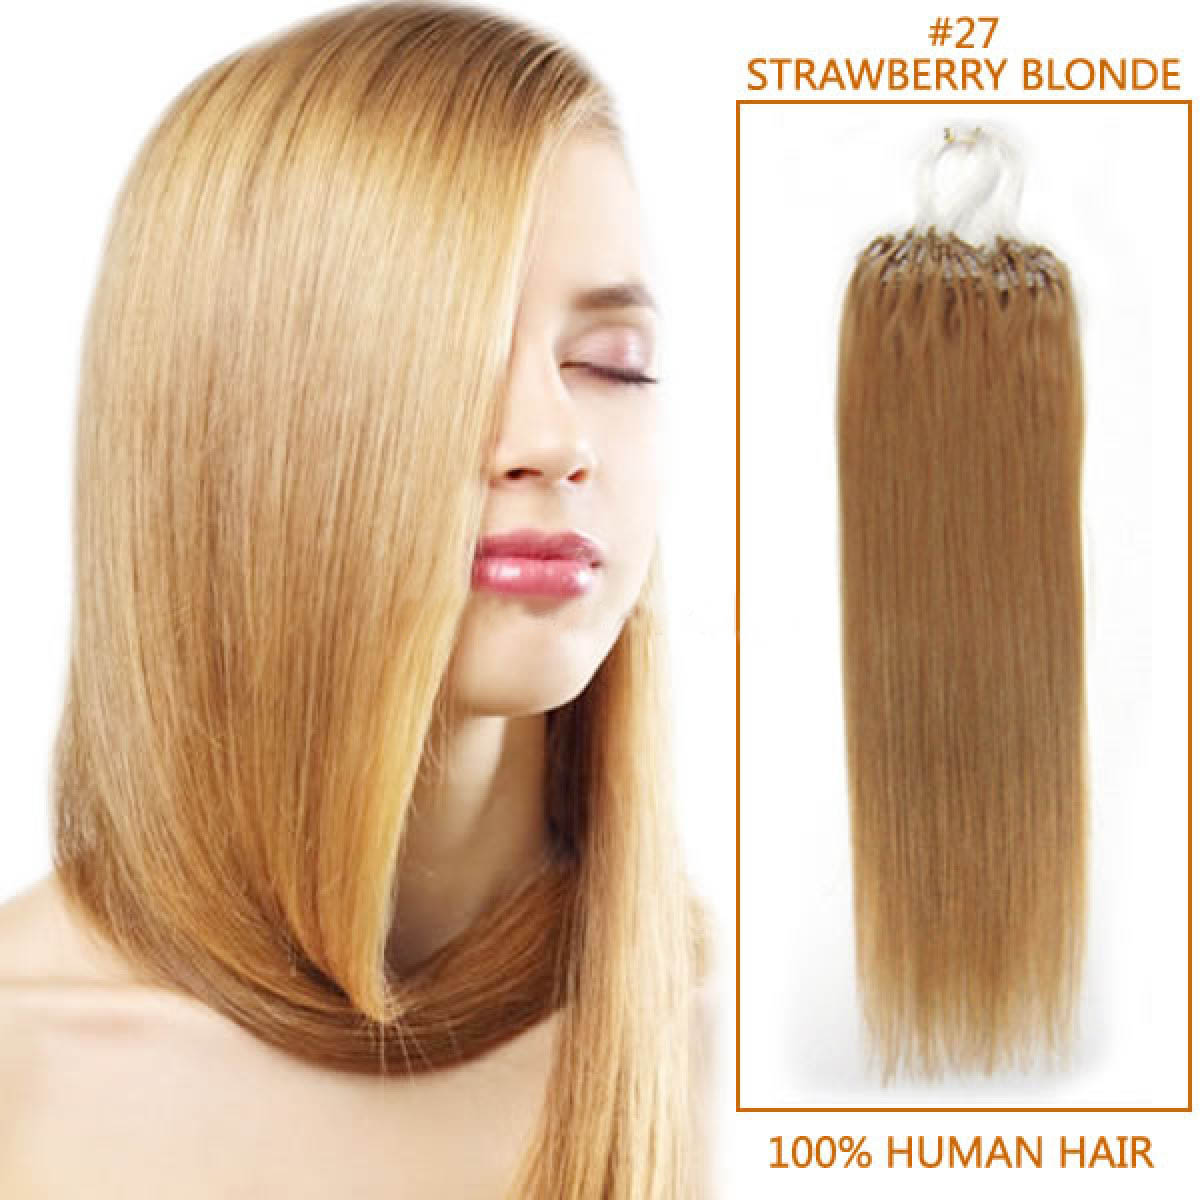 18 Inch 27 Strawberry Blonde Micro Loop Human Hair Extensions 100s